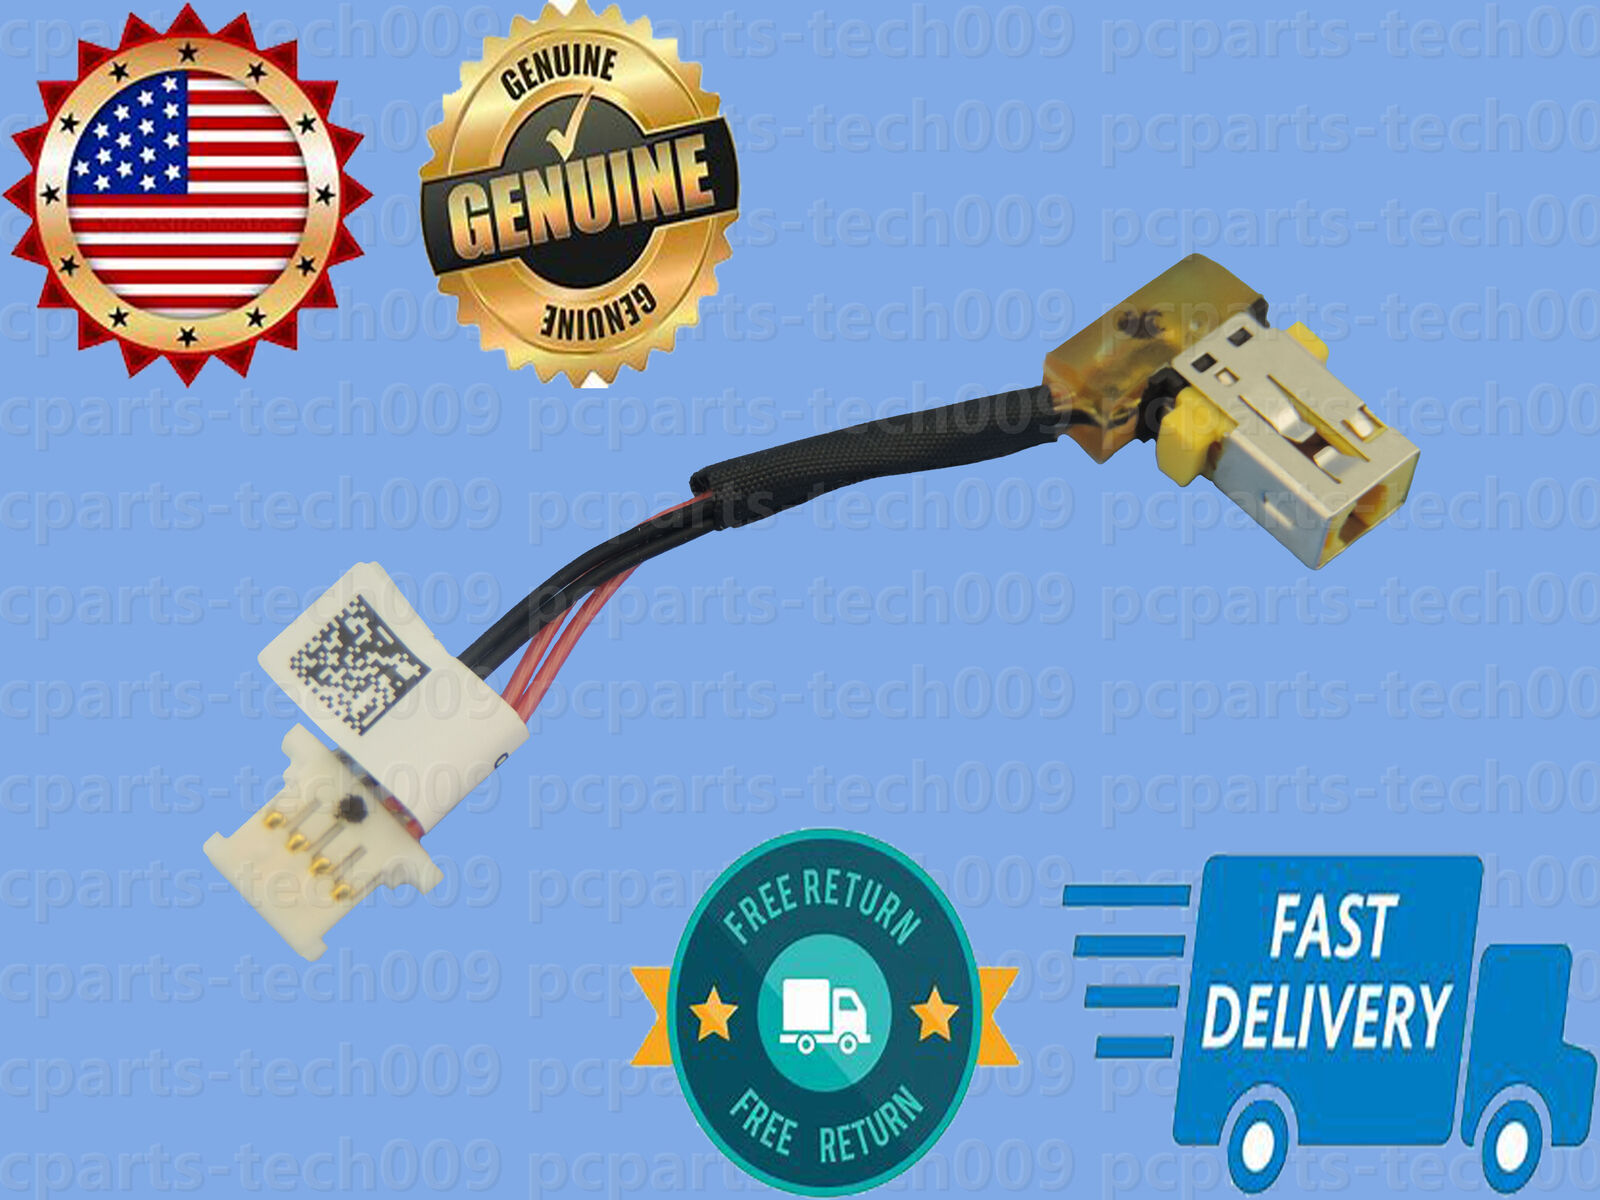 Zahara AC DC Power Jack with Cable Harness Connector Port Replacement for Acer Swift 3 SF314-51-52DH SF314-51-52W2 SF314-51-731X SF314-51-57Z3 SF314-51-71UUSF314-51-57CP SF314-51-30W6